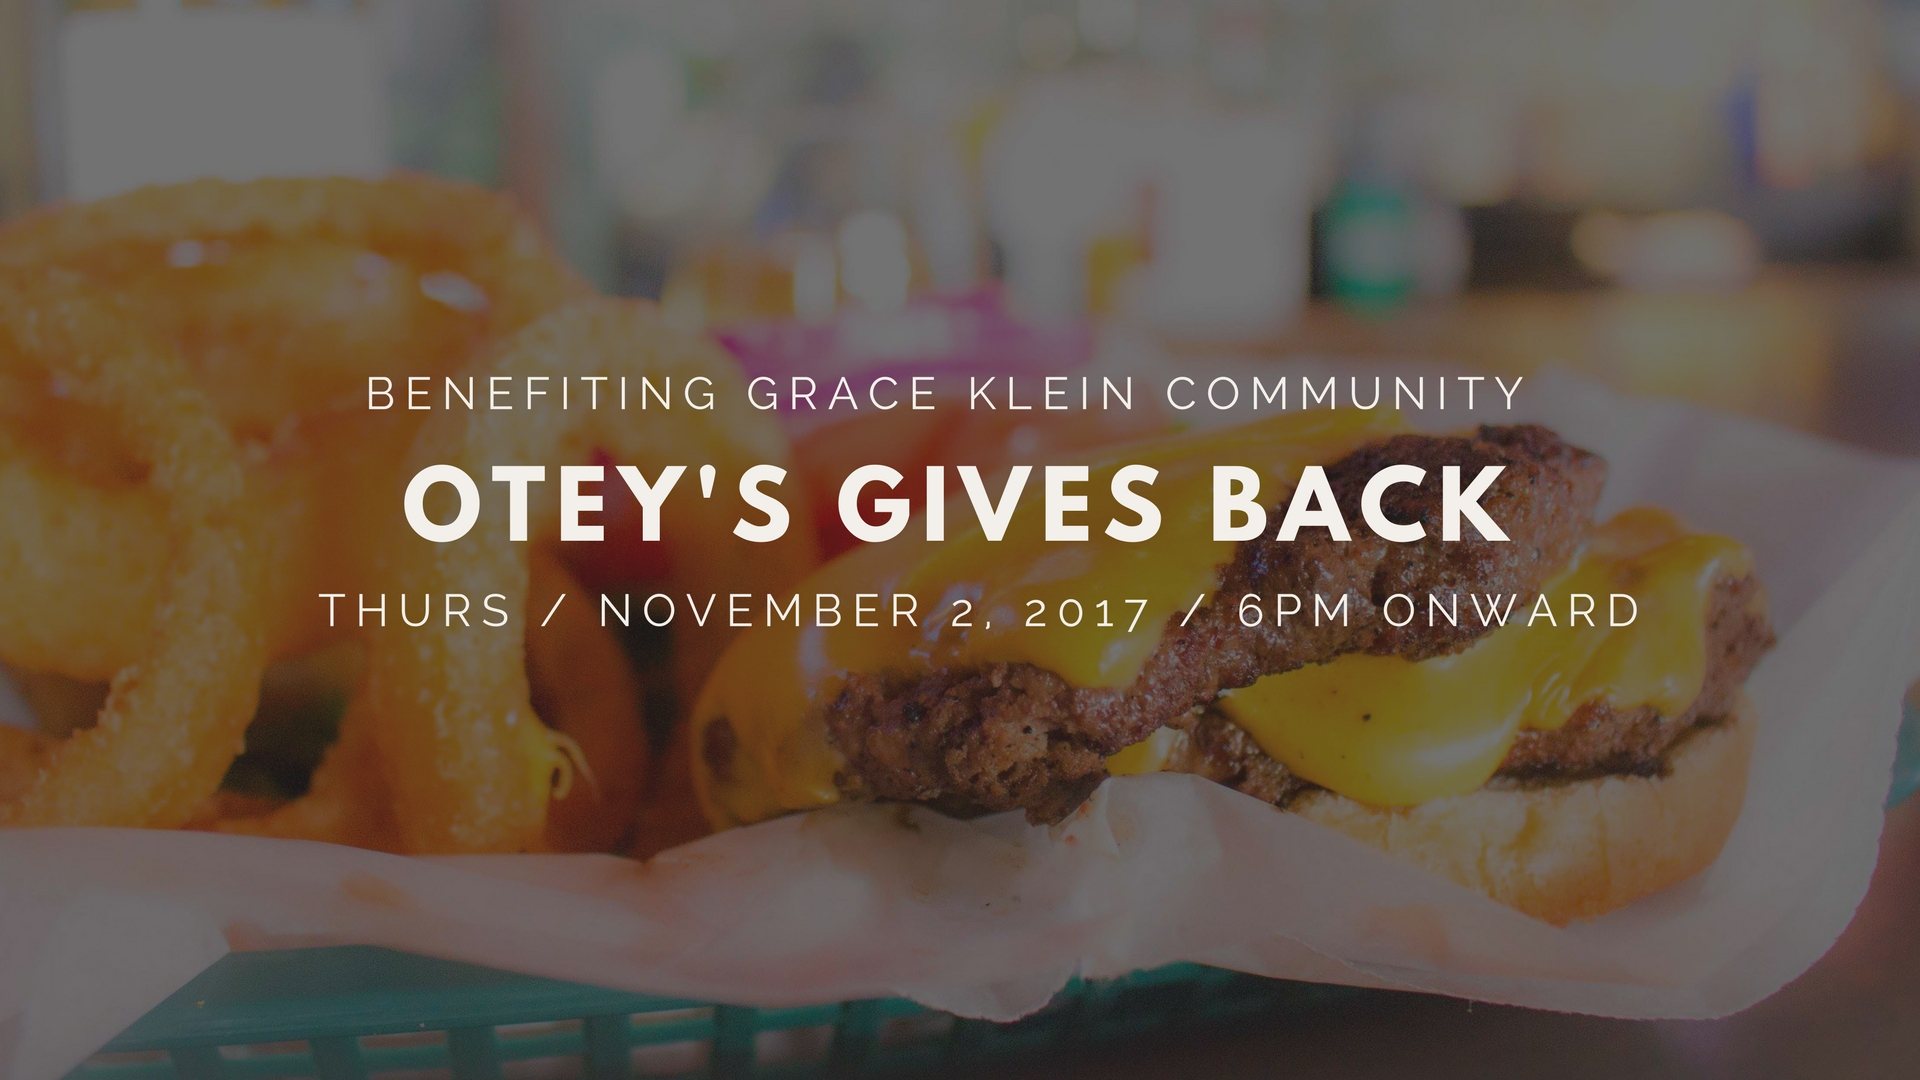 Otey's Gives Back